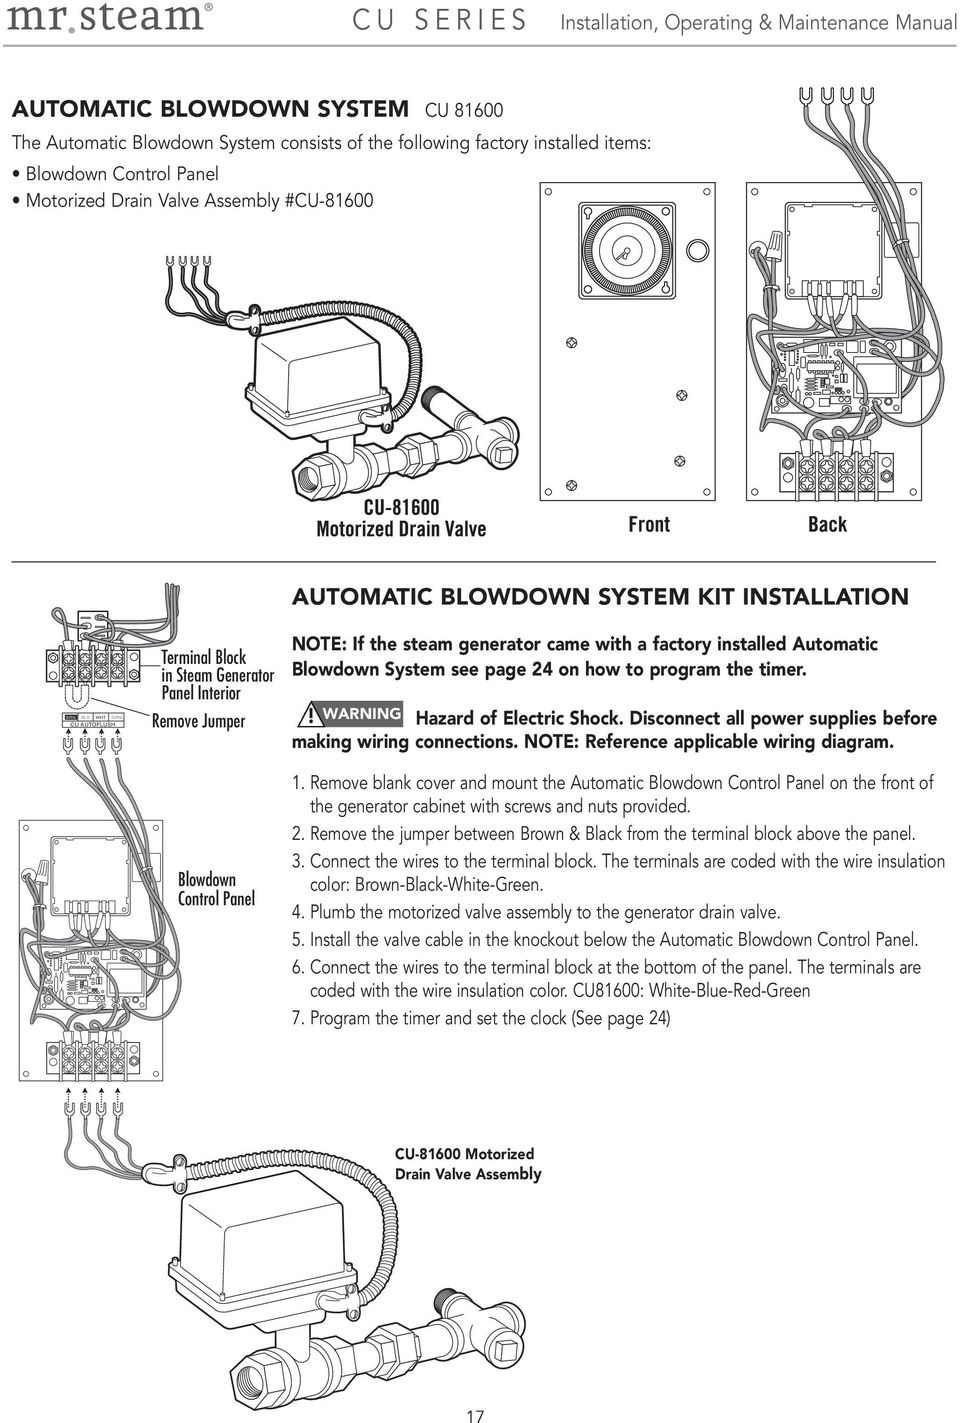 Installation Operation Maintenance Manual Mrsteam Feel Good Thread Switch Wiring Diagram For Mr Board With 4 Wire System See Page 24 On How To Program The Timer Warning Hazard Of Electric